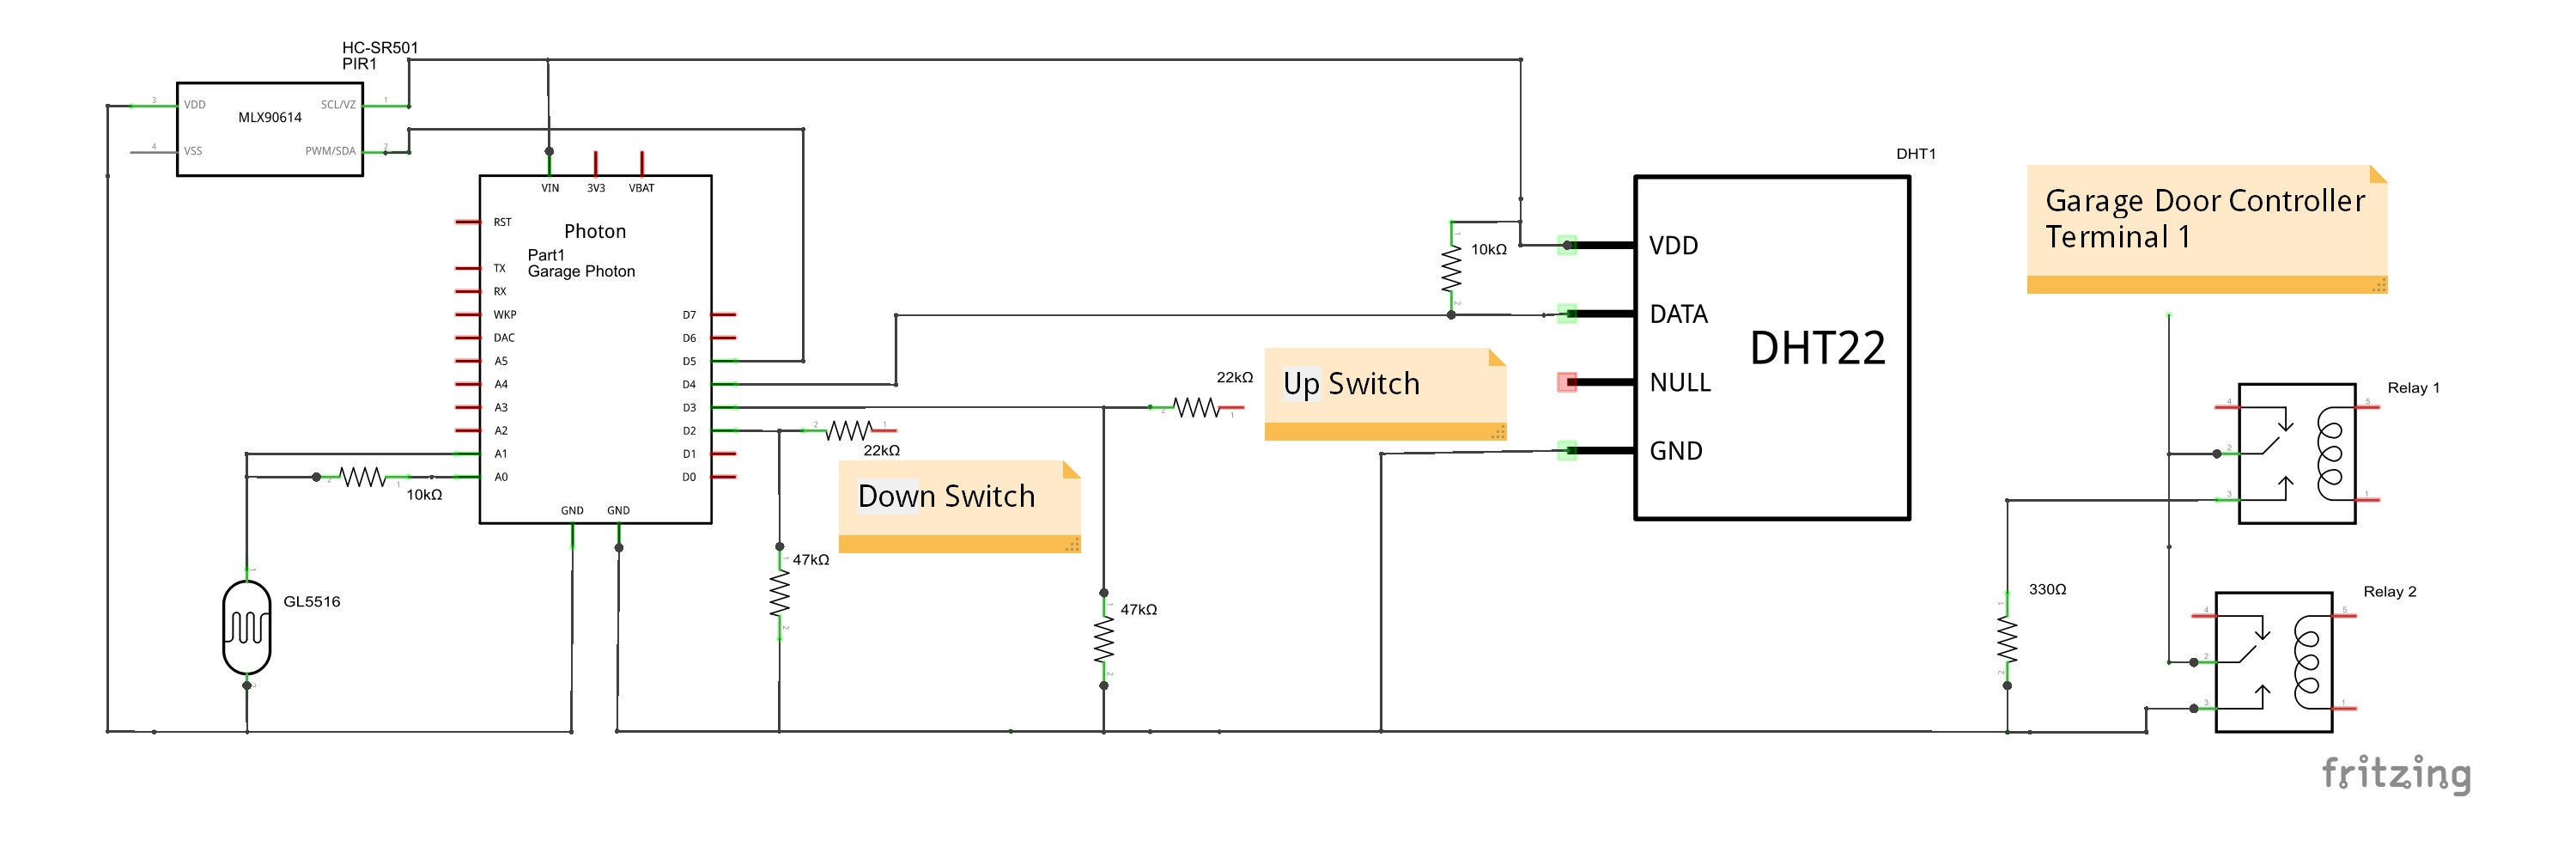 Garage Monitoring And Door Light Control Genie Sensor Wiring Diagram Free Picture Schematic From The Fritzing File Garage20monitor Schem